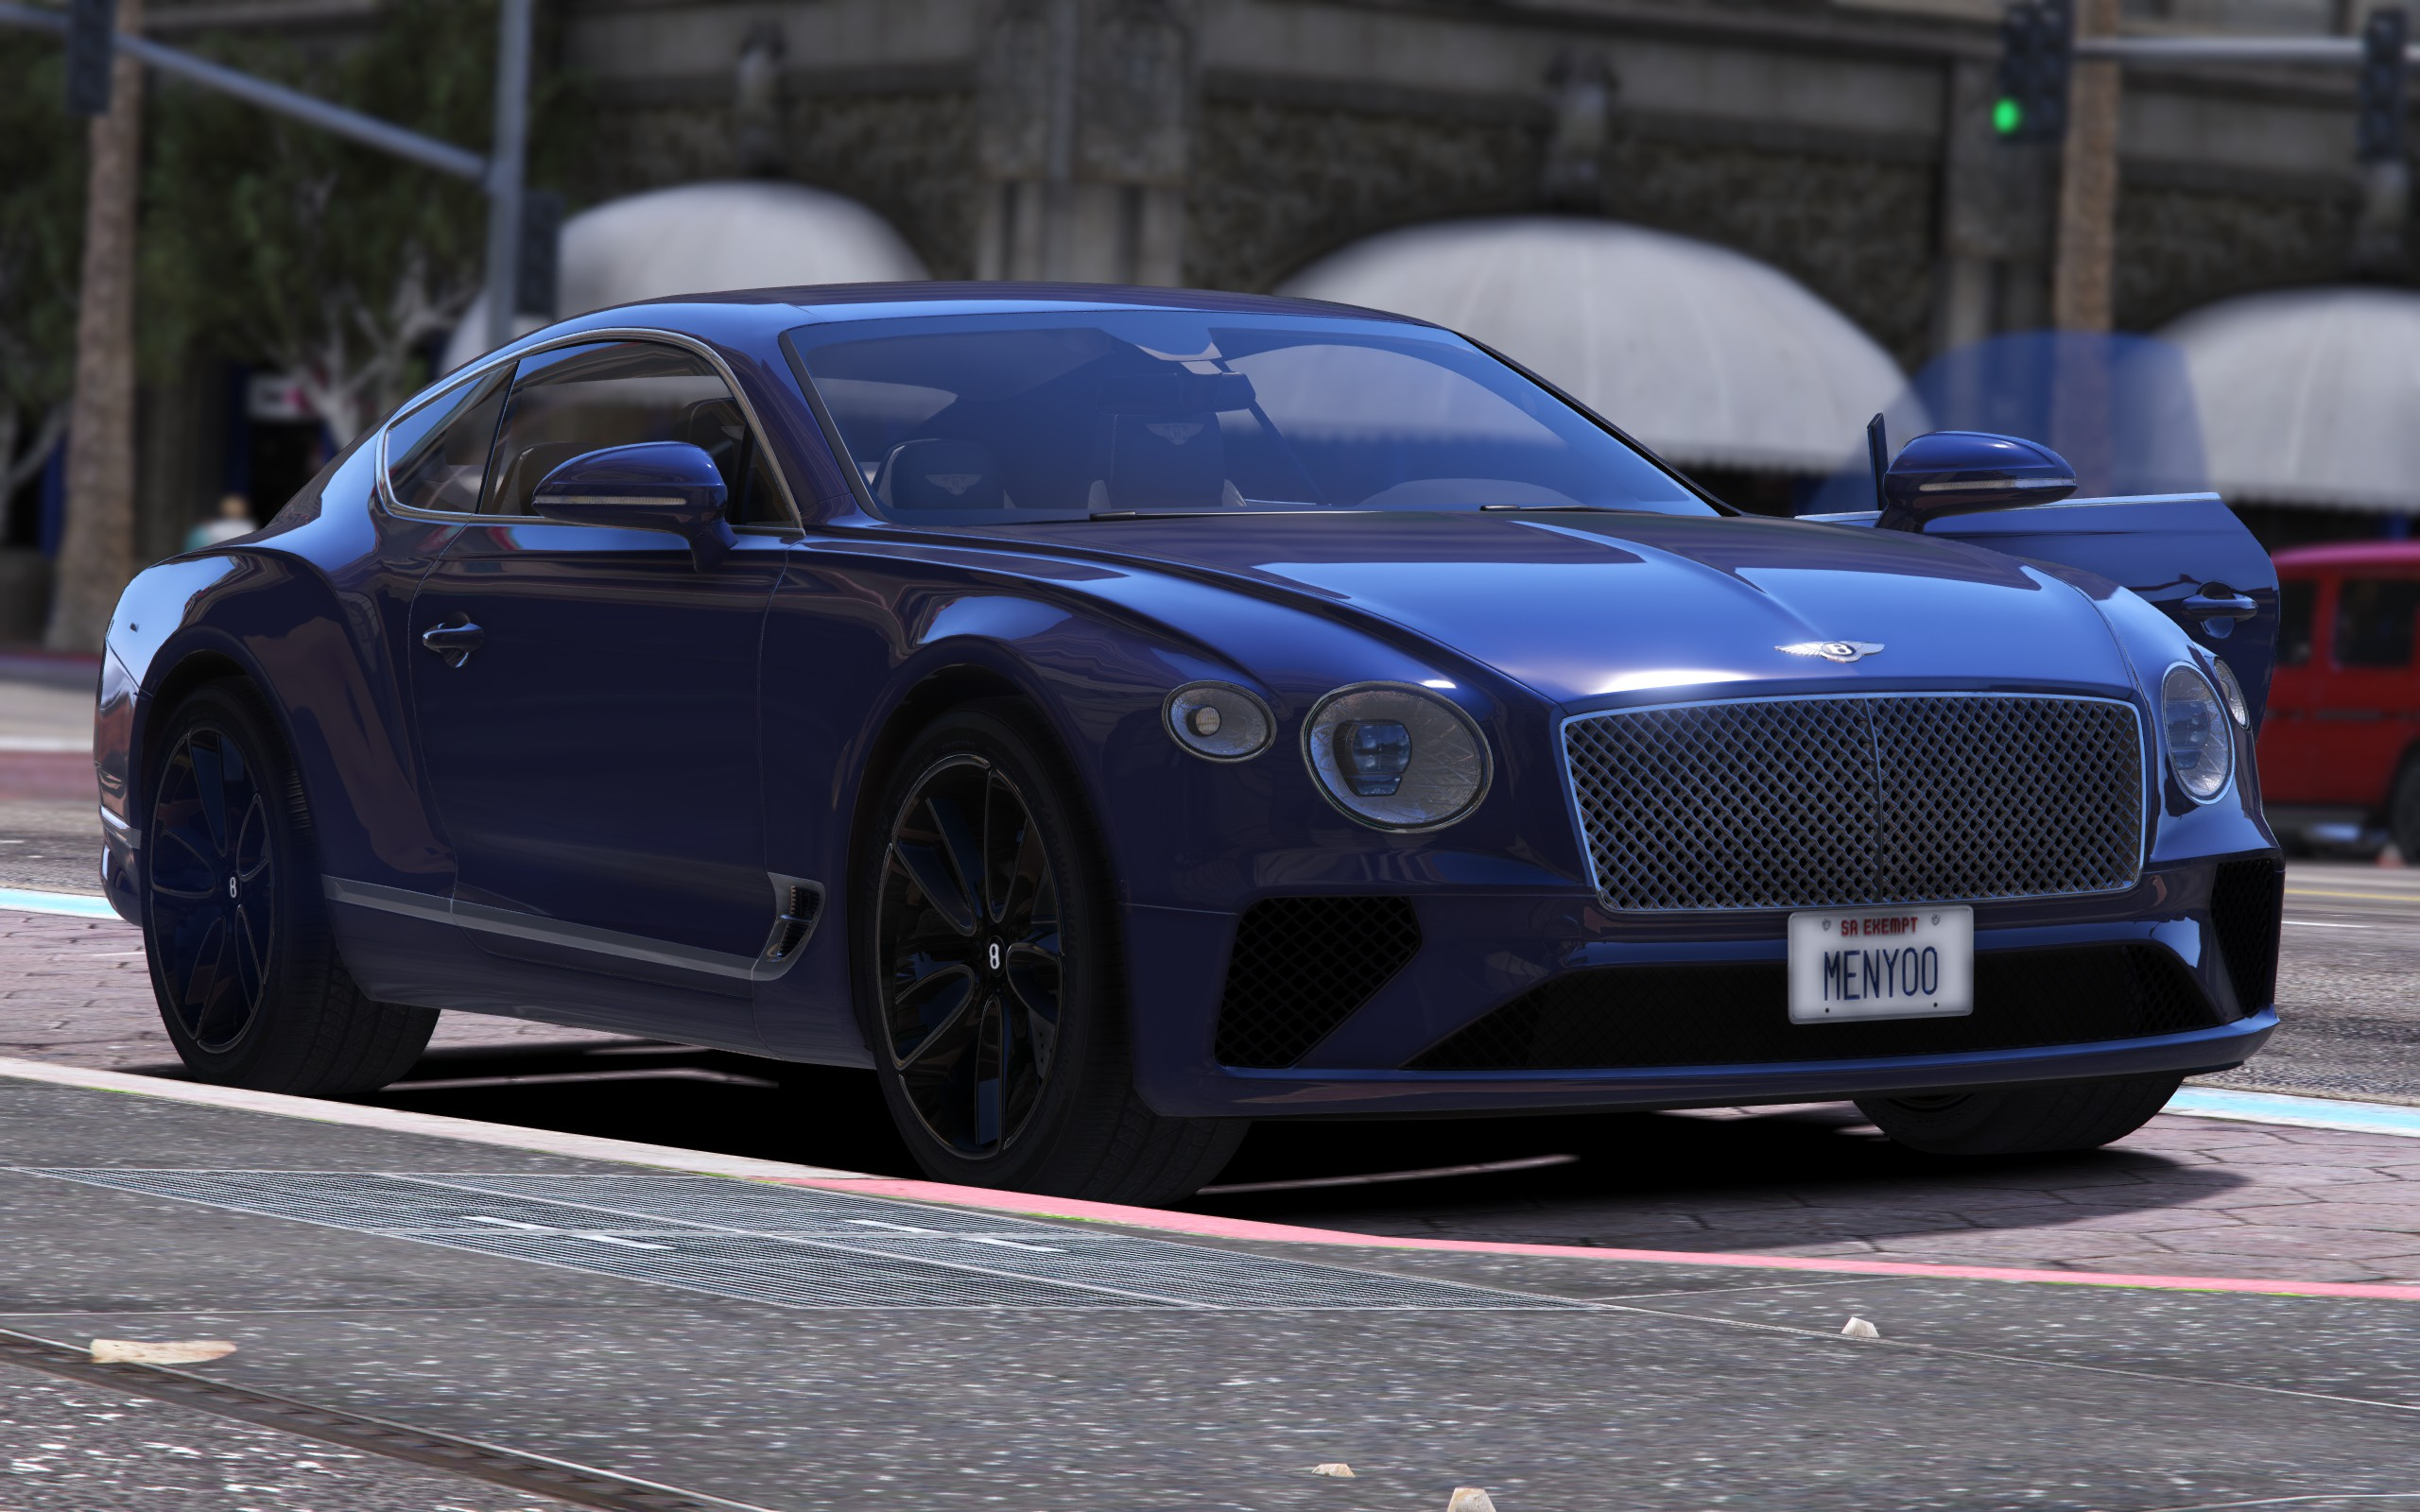 bentley continental gt 2018 1 0 replace addon gta5. Black Bedroom Furniture Sets. Home Design Ideas